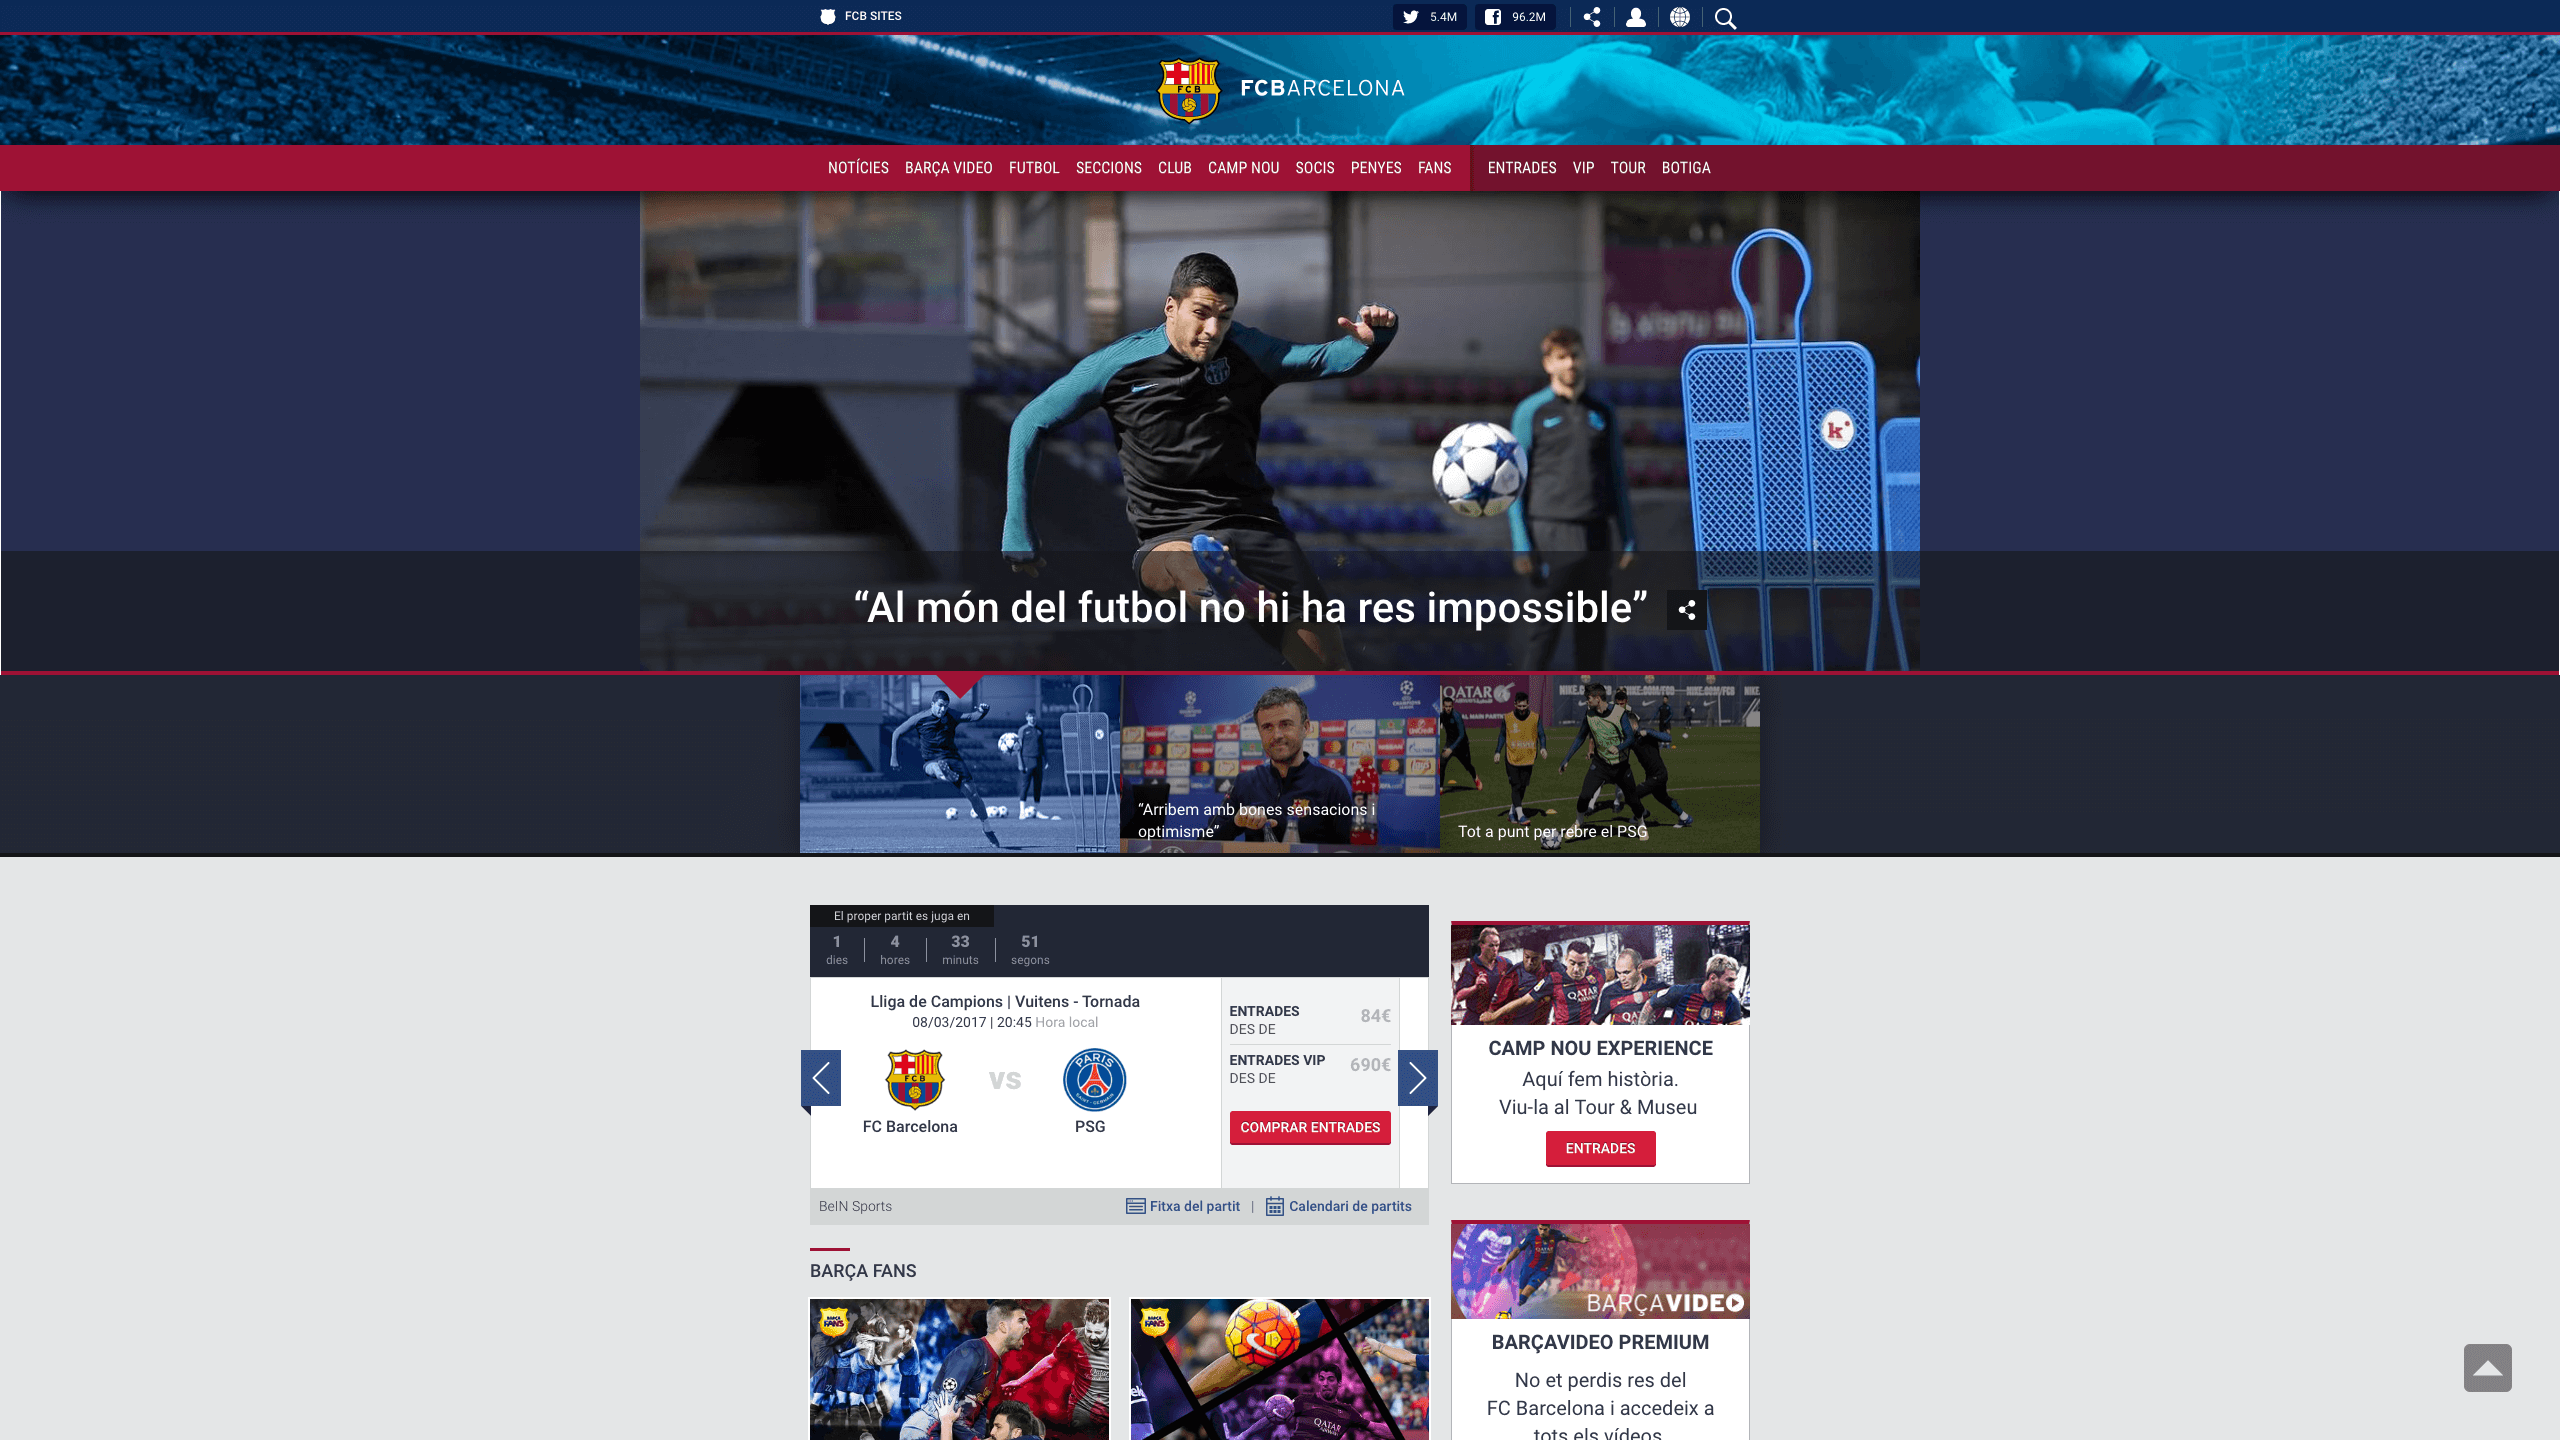 Web of the Futbol Club Barcelona